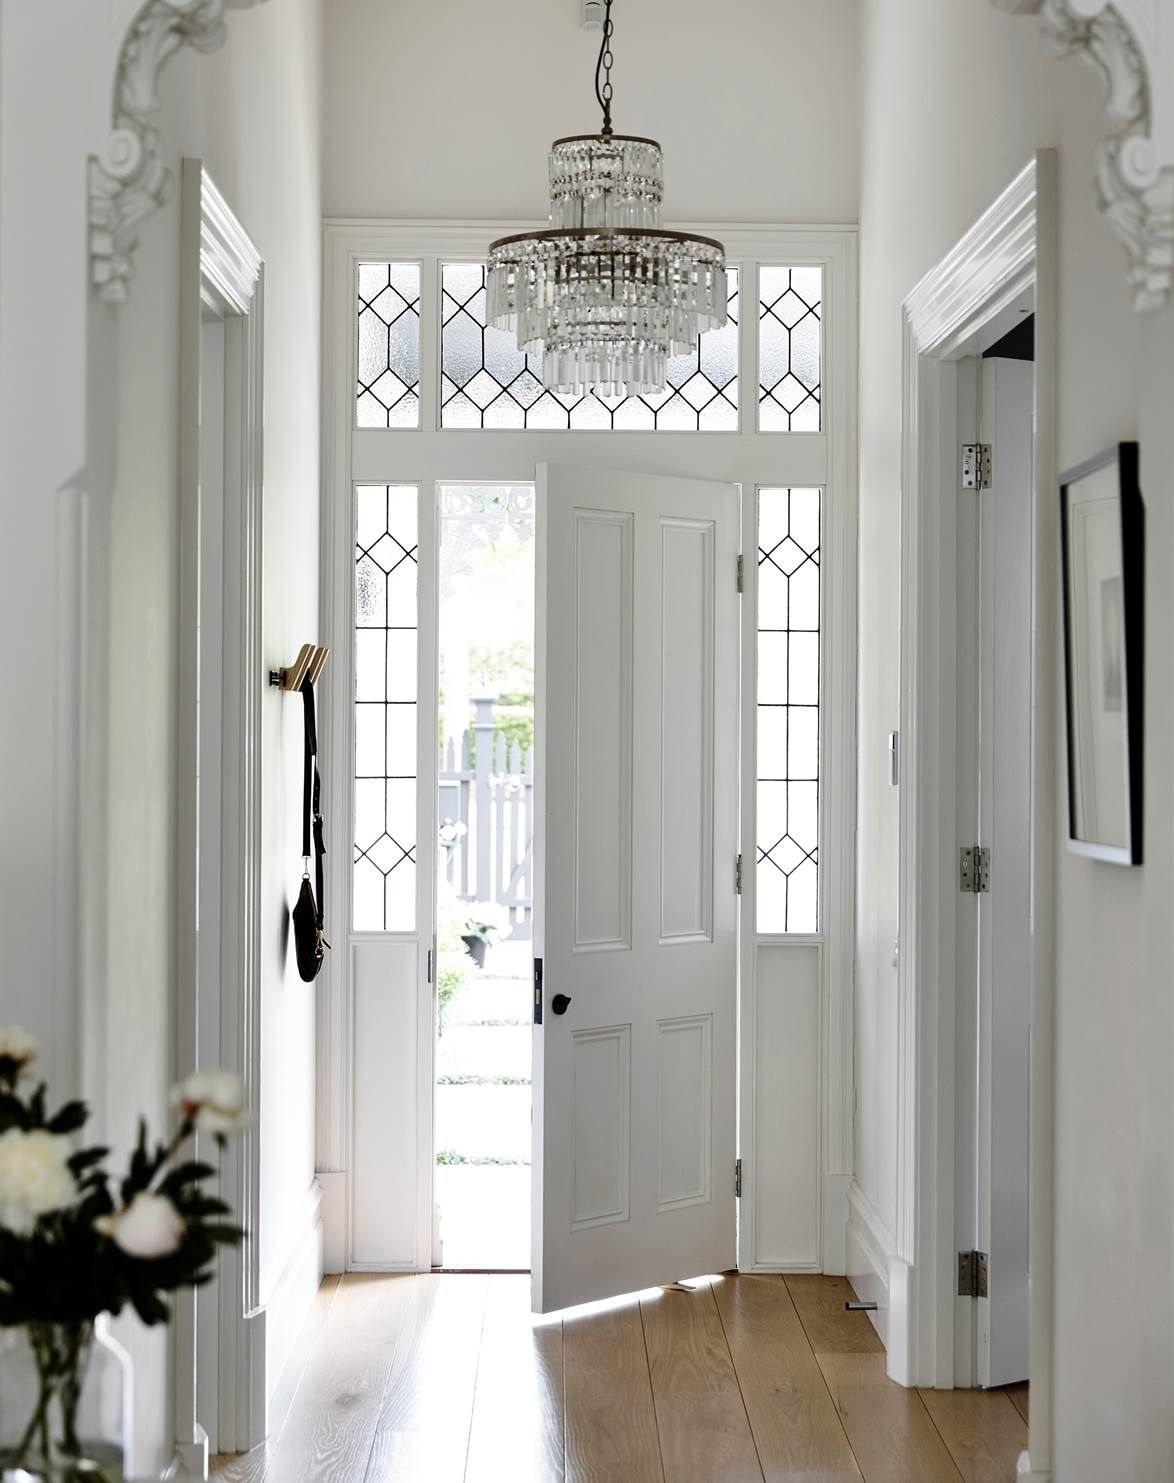 10 front door ideas for serious kerb appeal #victorianfrontdoors